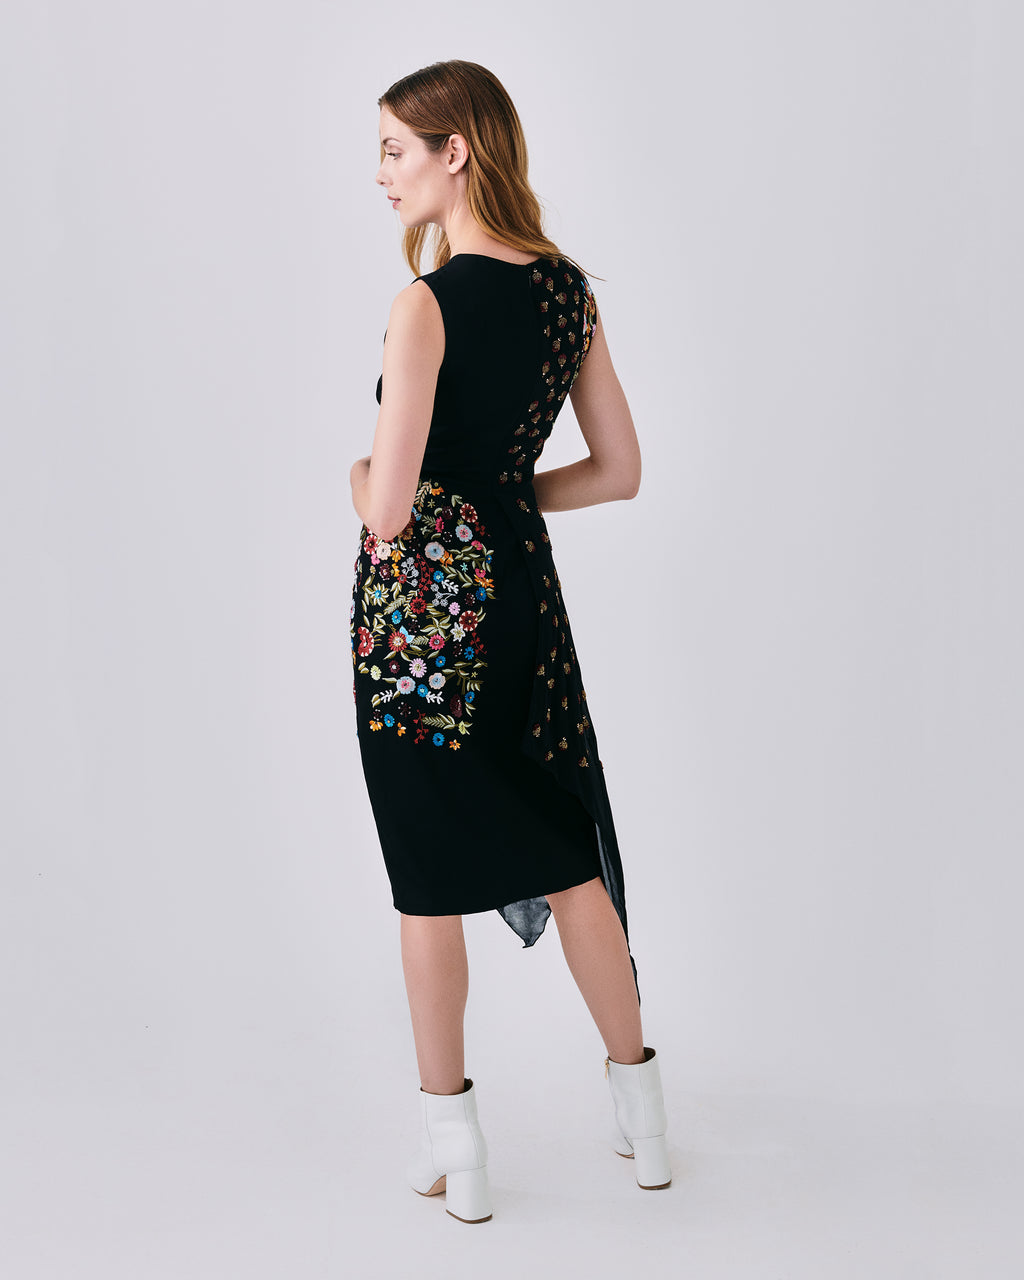 CO10108 - EMBELLISHED FLORAL NECTARY ASYMM DRESS - dresses - midi - With a scoop neckline and subtle shoulder cutout, this black dress features floral embellishment andan asymmetrical hemline. Finished with a concealedzipper and fully lined.�